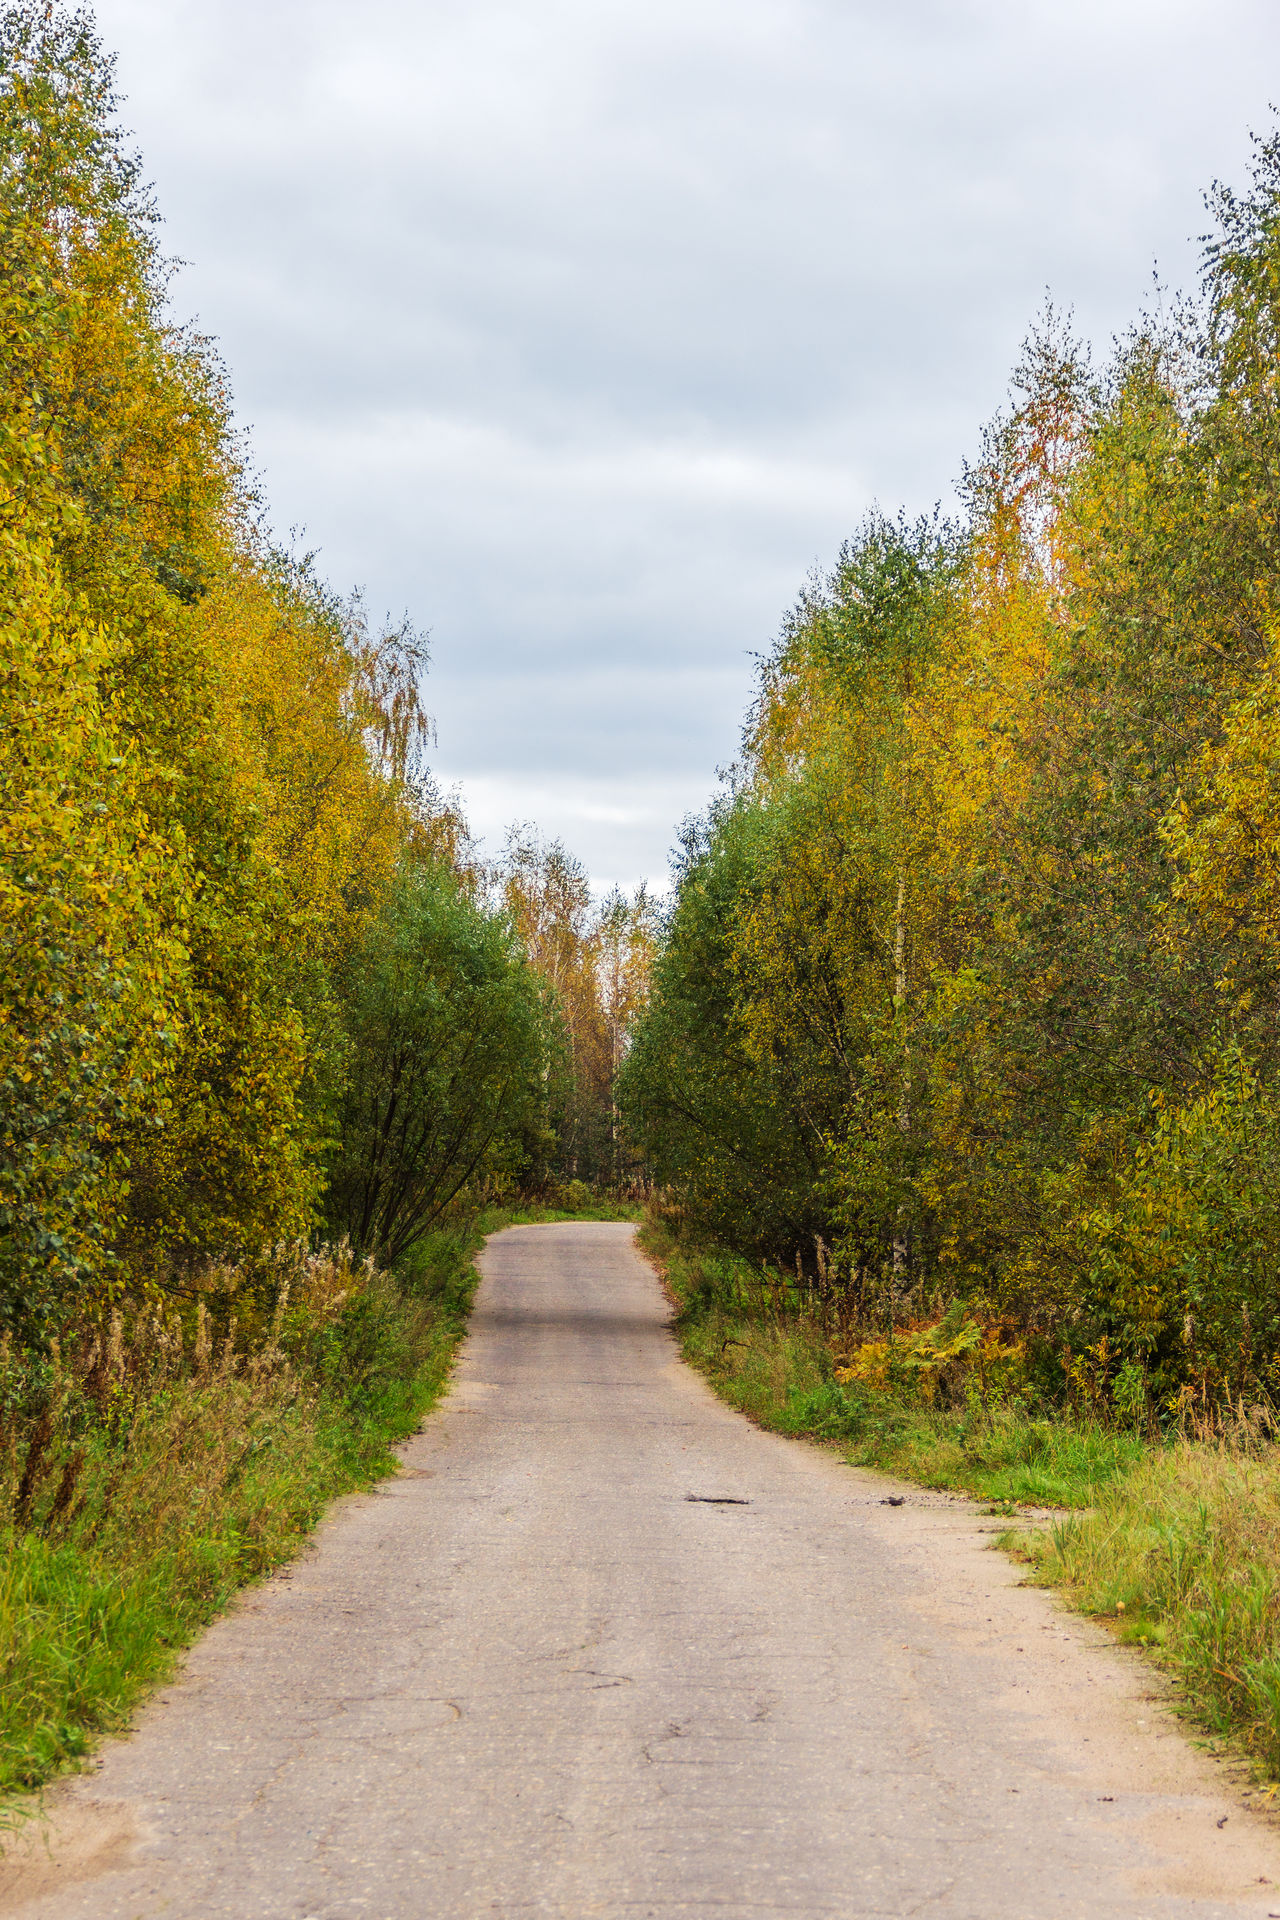 The provincial road between the villages of Tver region. Autumn Day Landscape Leaf Nature No People Outdoors Road Road Scenics Single Lane Road Sky The Way Forward Tree Treelined Yellow